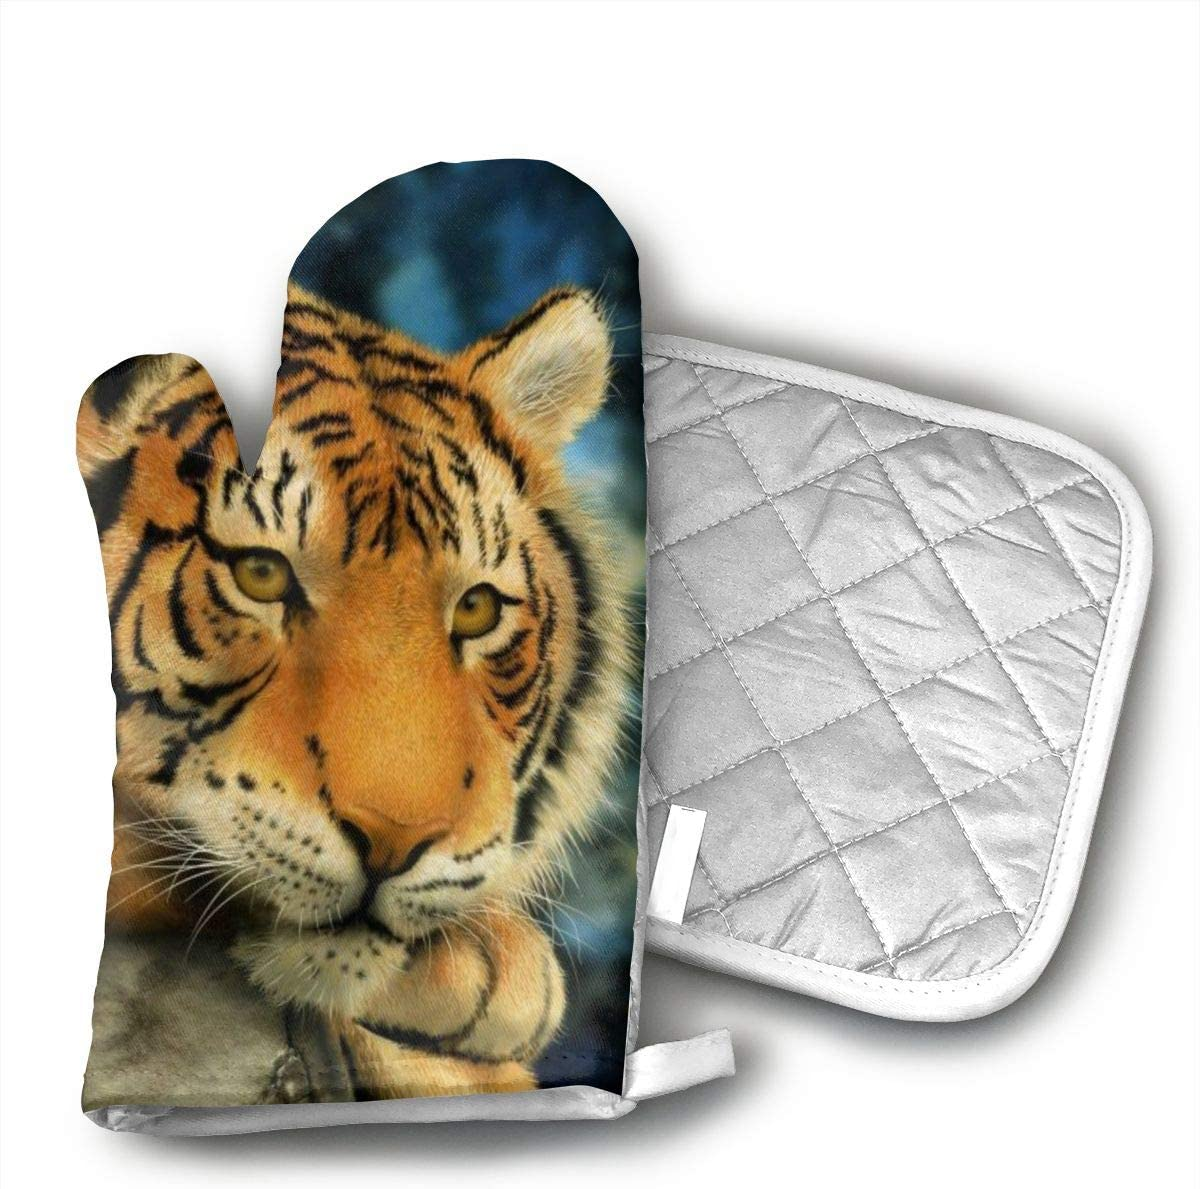 GRSTsys Lazy Tiger Oven Mitts, Cook Mittens Protect Your Hand During Baking Doing BBQ